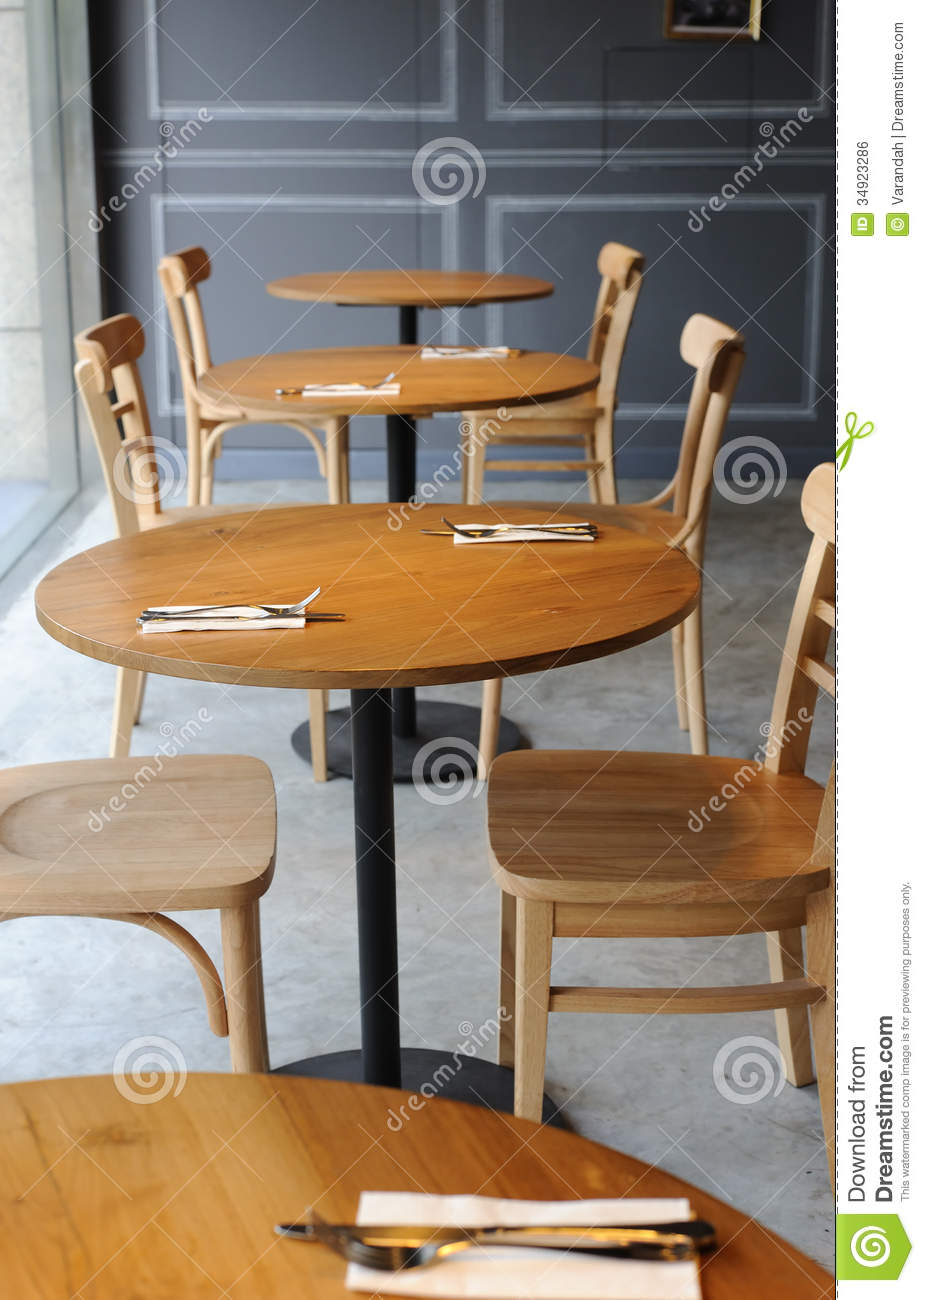 Wooden Chair And Table In The Corner Of Cafe Royalty Free ...